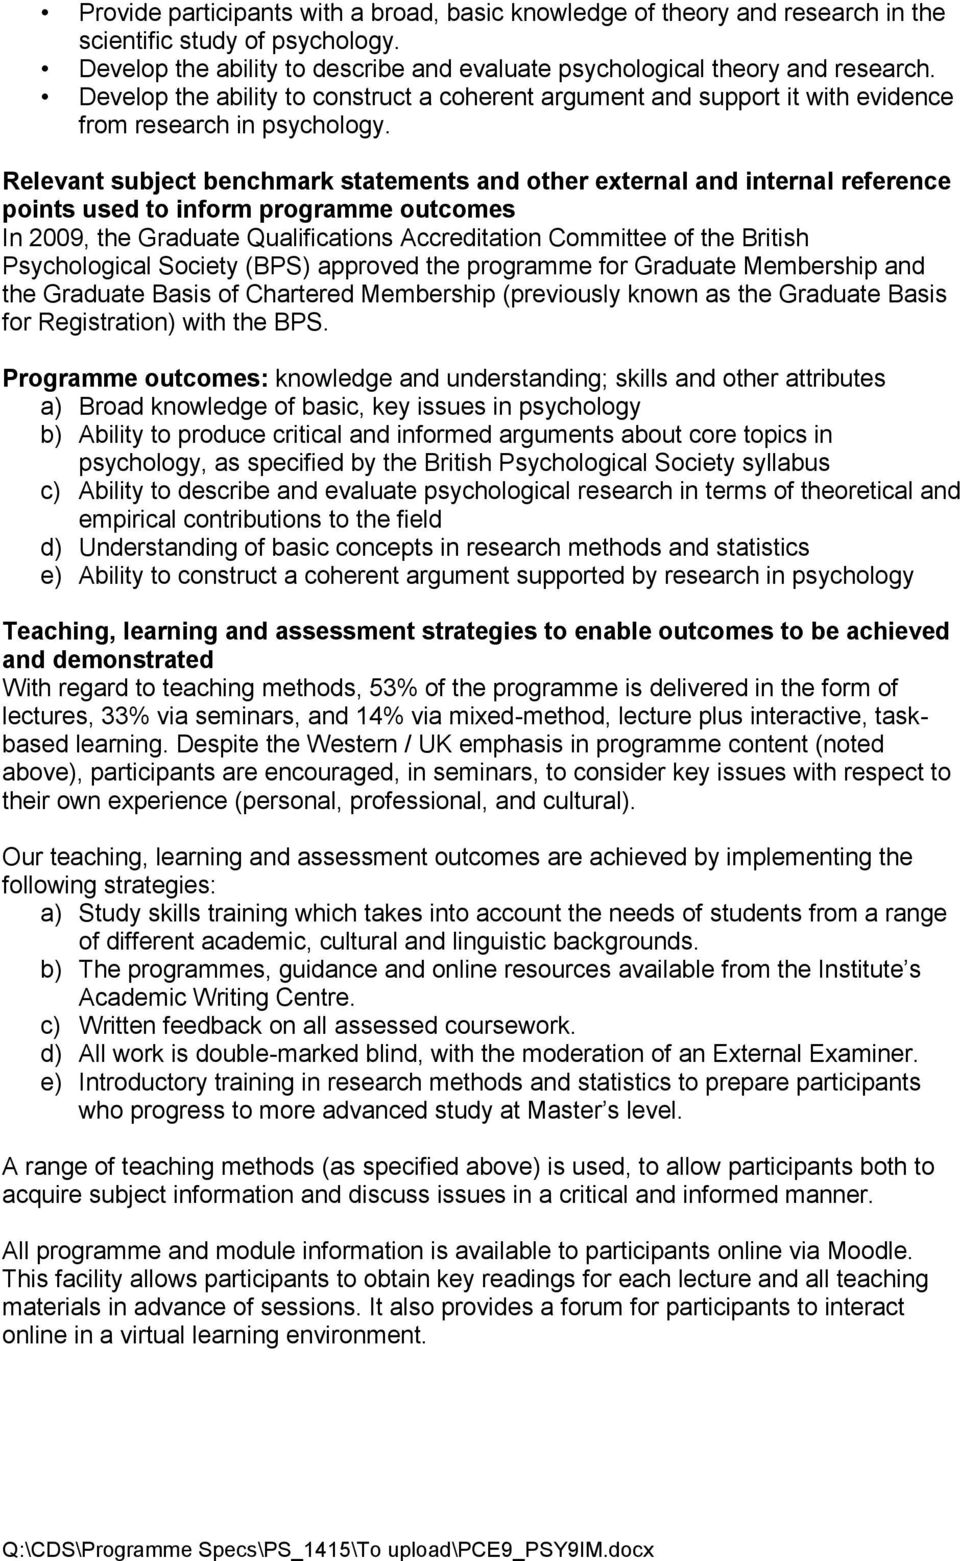 Relevant subject benchmark statements and other external and internal reference points used to inform programme outcomes In 2009, the Graduate Qualifications Accreditation Committee of the British